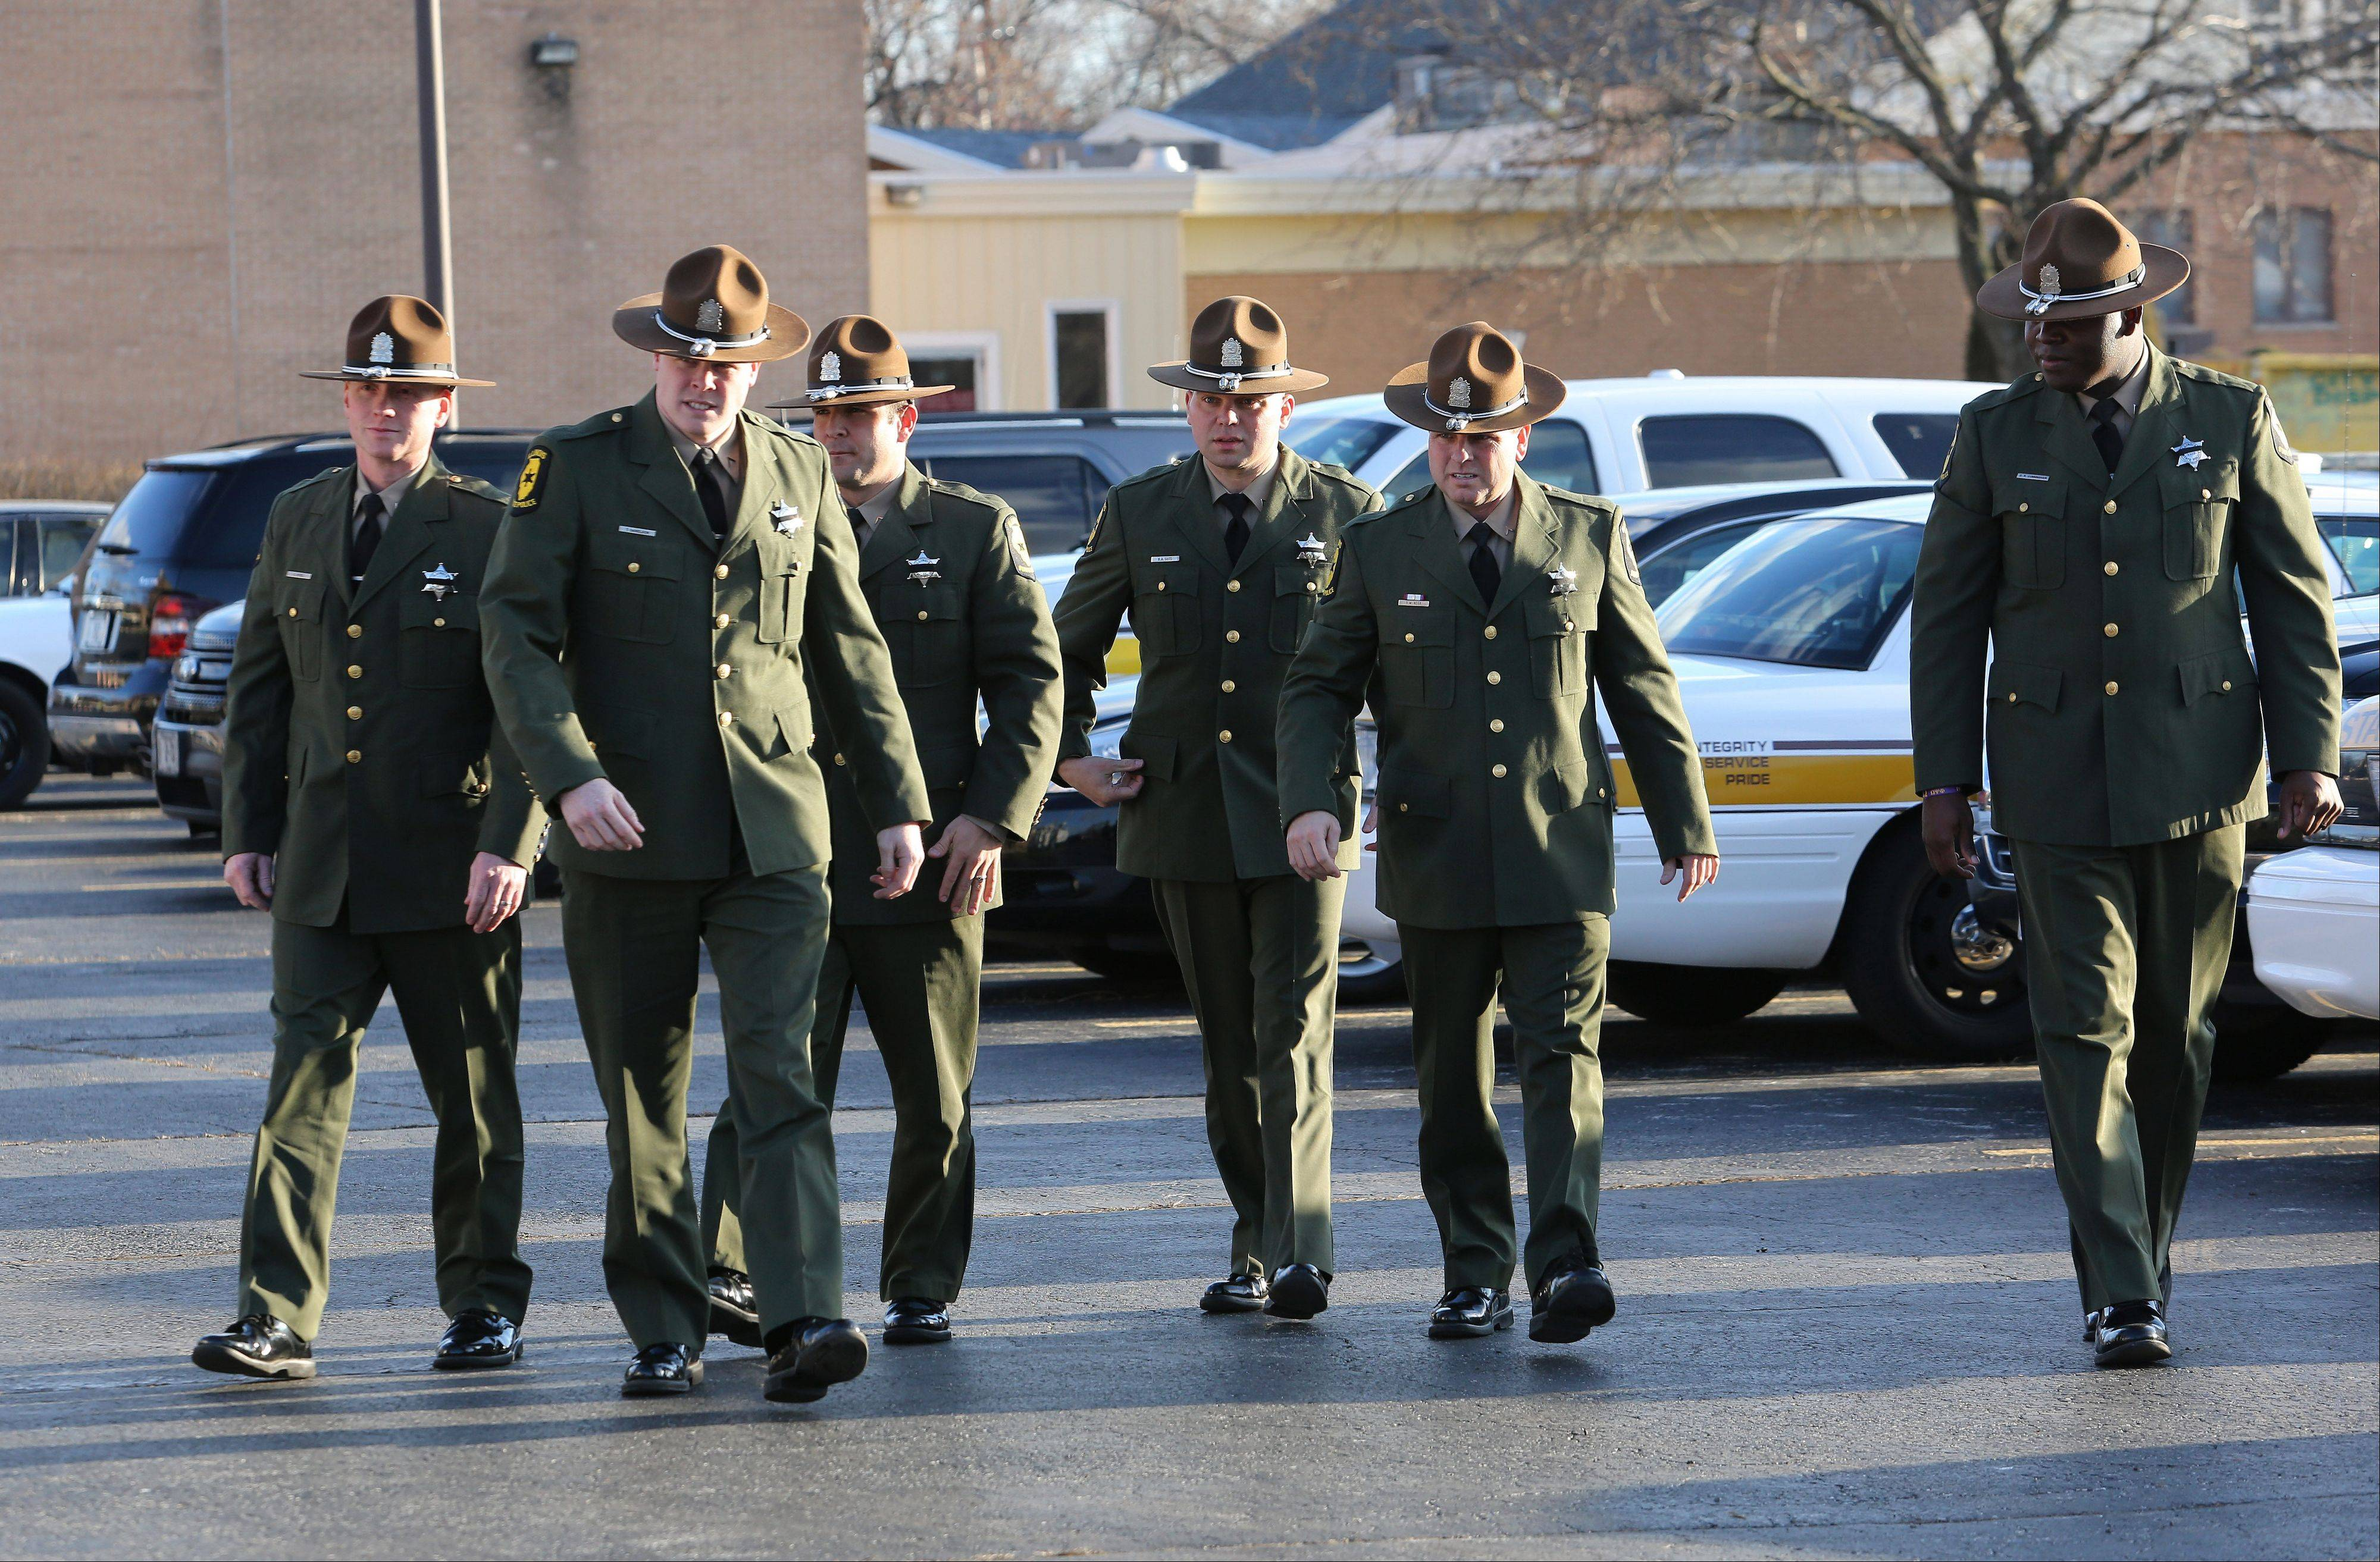 Illinois state troopers arrive for the visitation of James Sauter at Moraine Valley Church in Palos Heights on Monday. He was an Illinois state trooper from Vernon Hills, who was killed early Friday morning on the job.